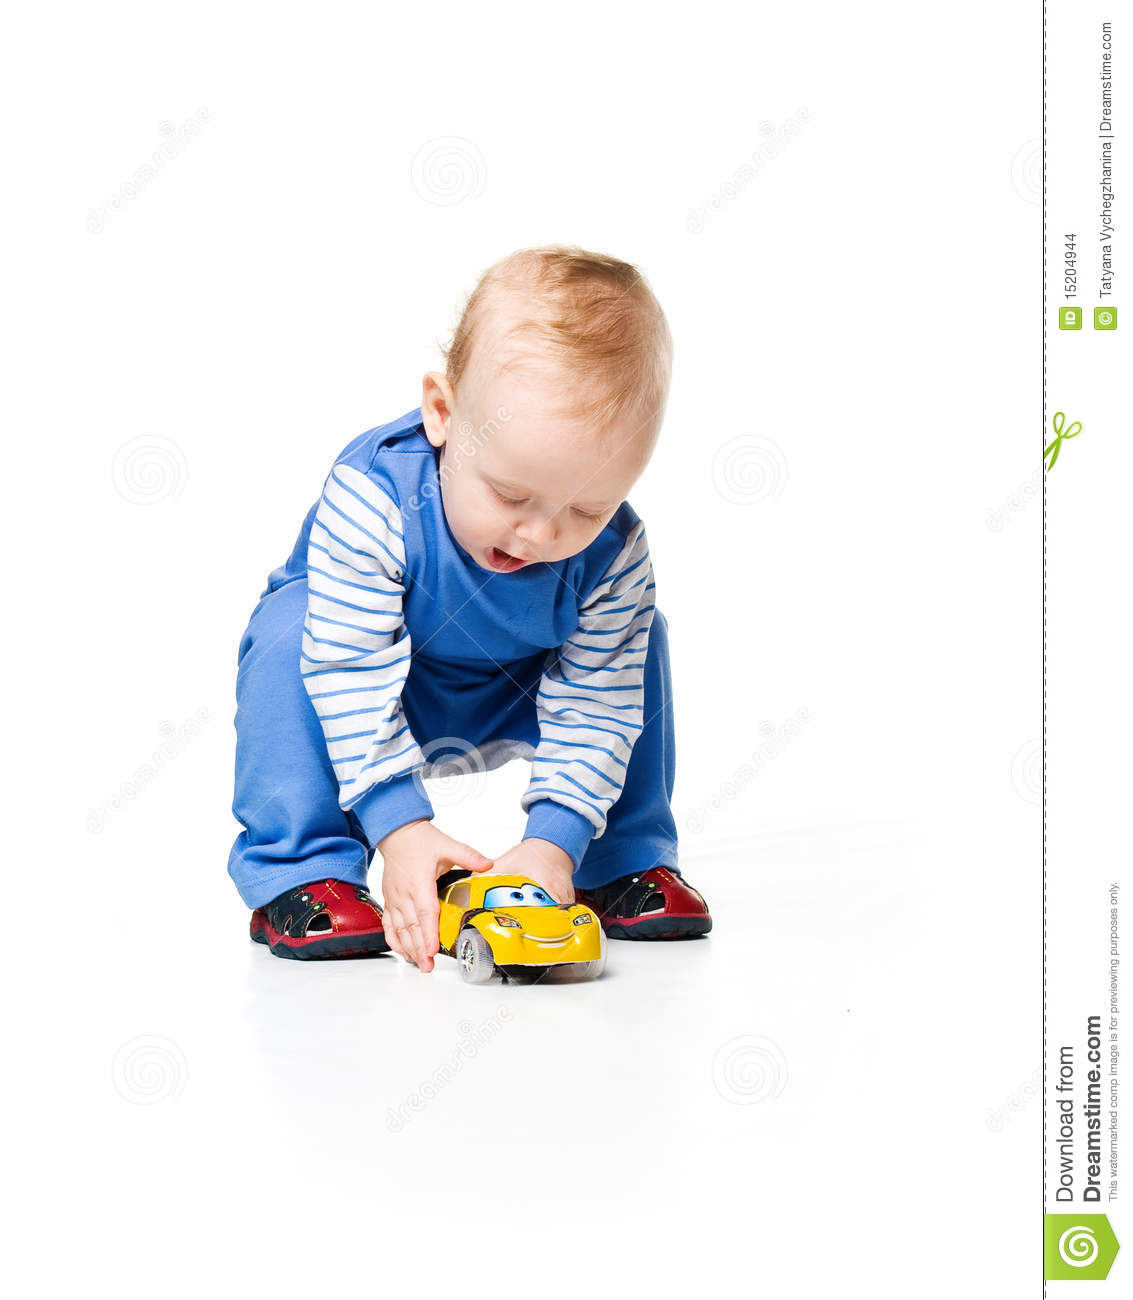 Little Boy With Toy Car : Cute little boy with car toy stock photo image